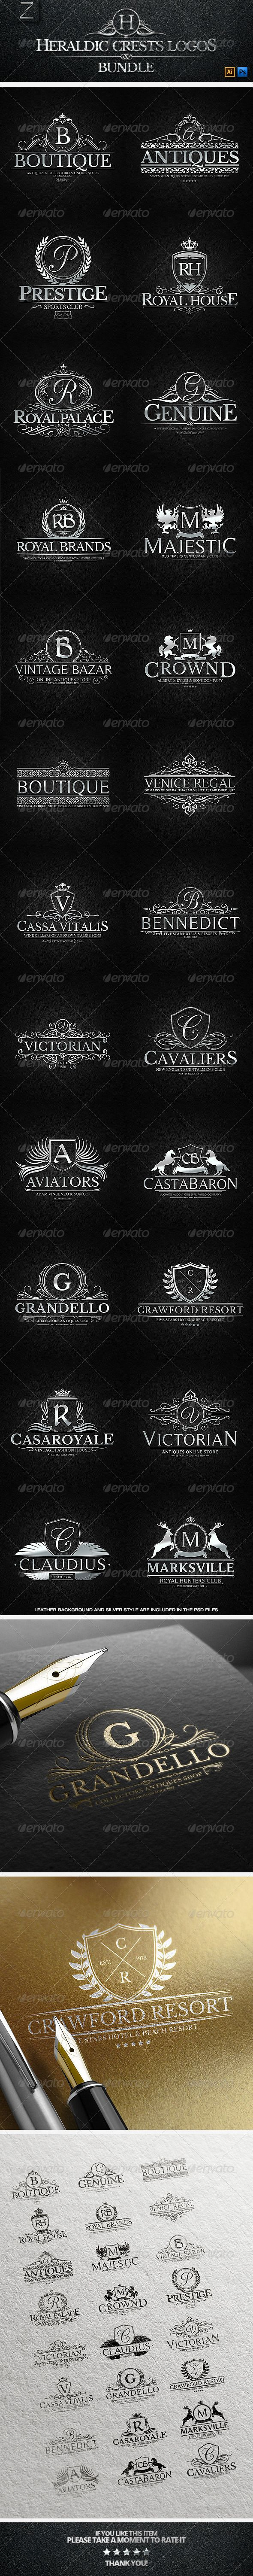 24 Heraldic Crest Logos Bundle Template | Buy and Download: http://graphicriver.net/item/24-heraldic-crest-logos-bundle/7874086?WT.ac=category_thumb&WT.z_author=Alex_Zeppelin&ref=ksioks